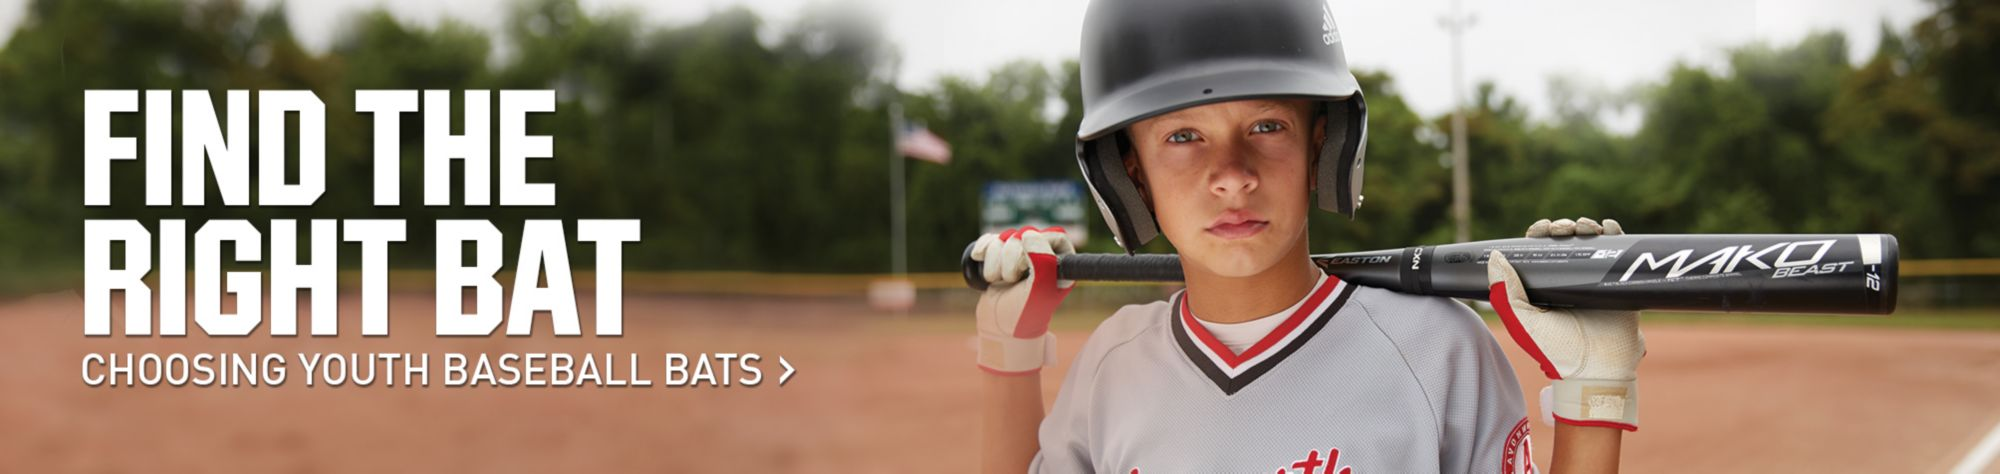 How to Buy a Youth Baseball Bat